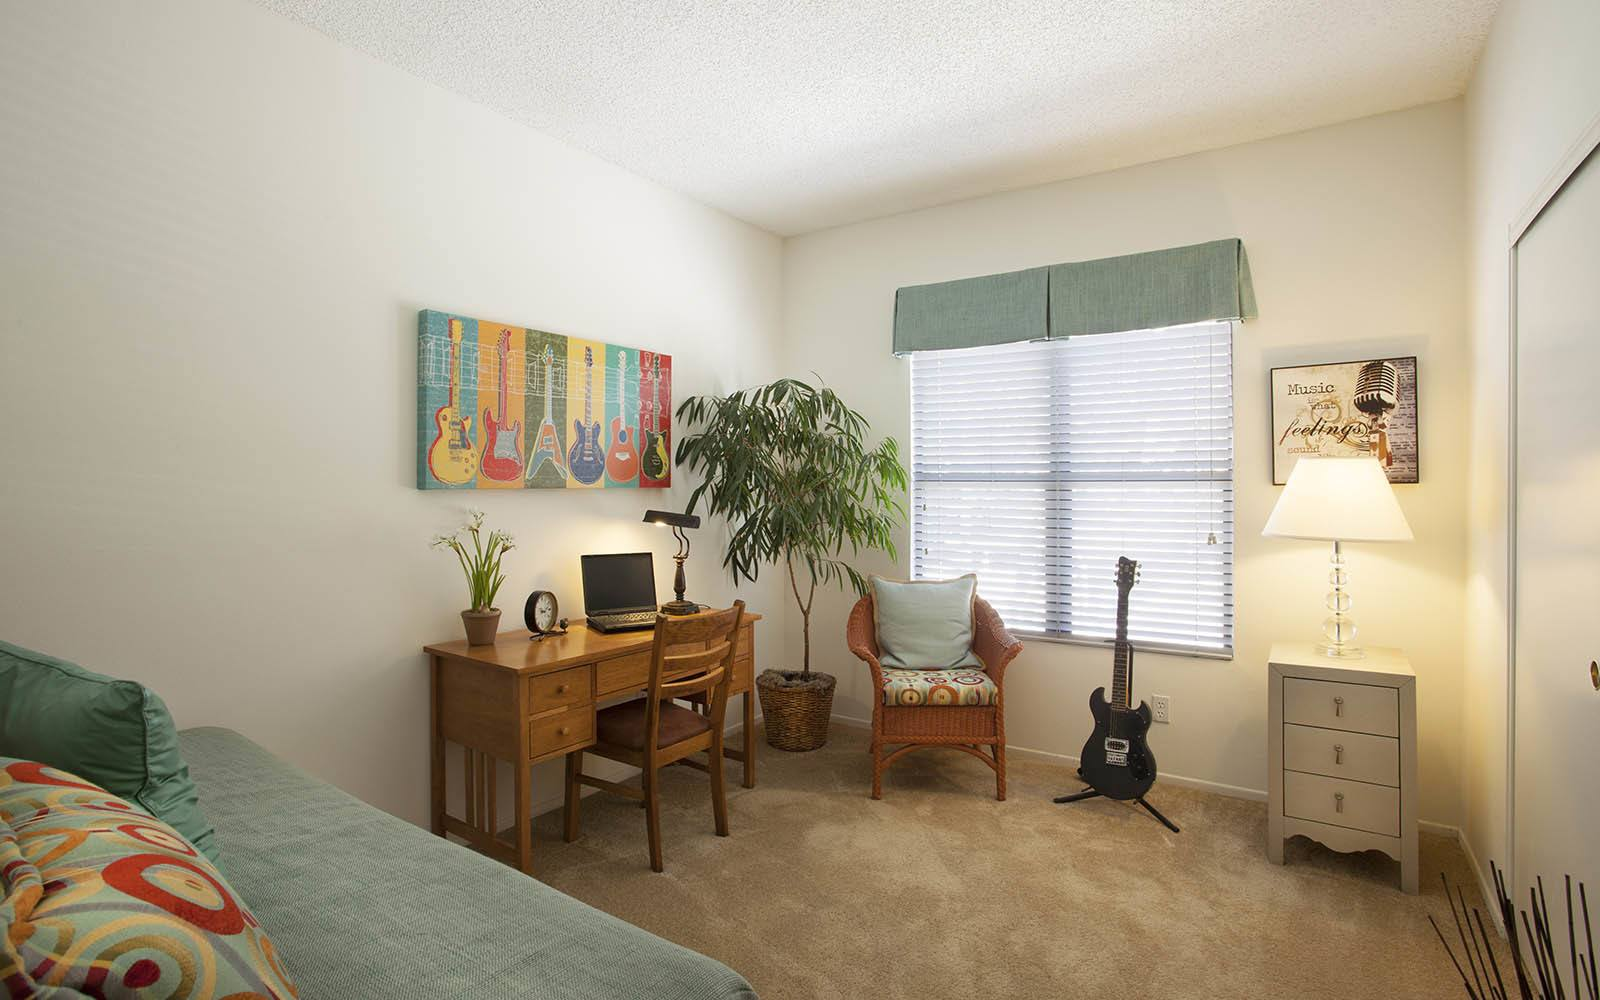 Bedroom With Desk And Extra Floor Space at Cypress Point Apartments in Ventura, CA